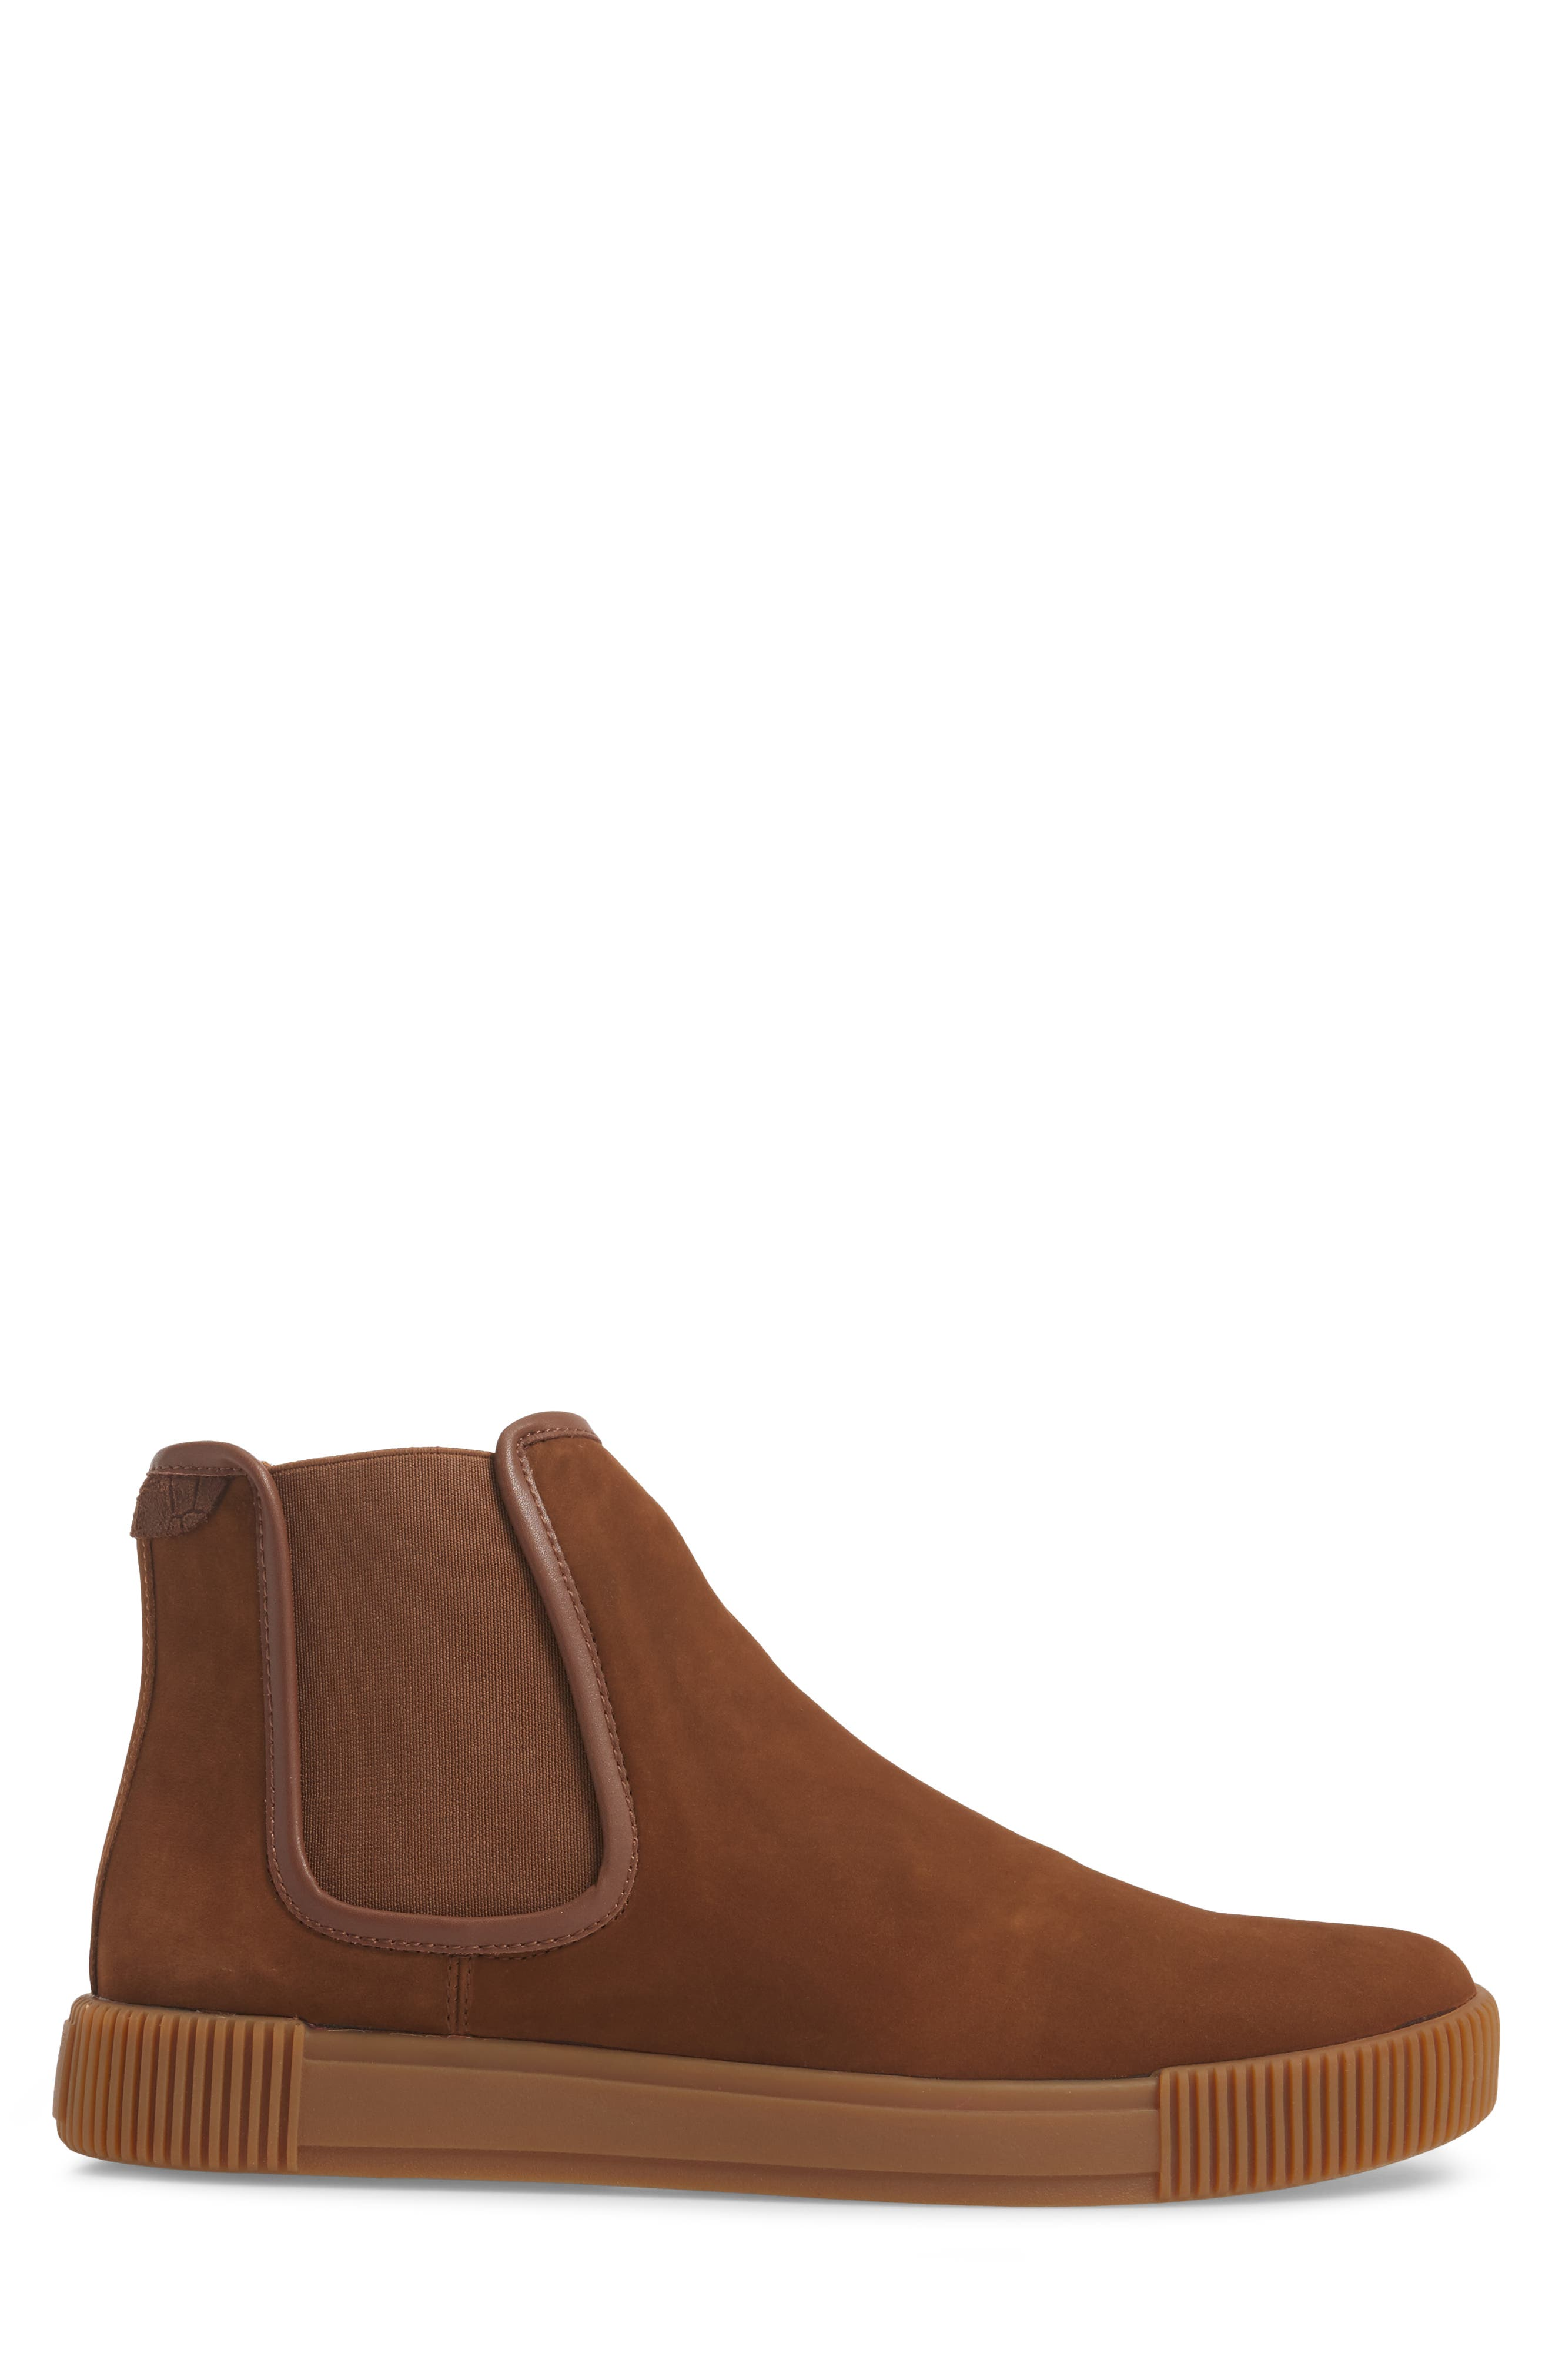 Lyons Chelsea Boot,                             Alternate thumbnail 3, color,                             CHOCOLATE SUEDE